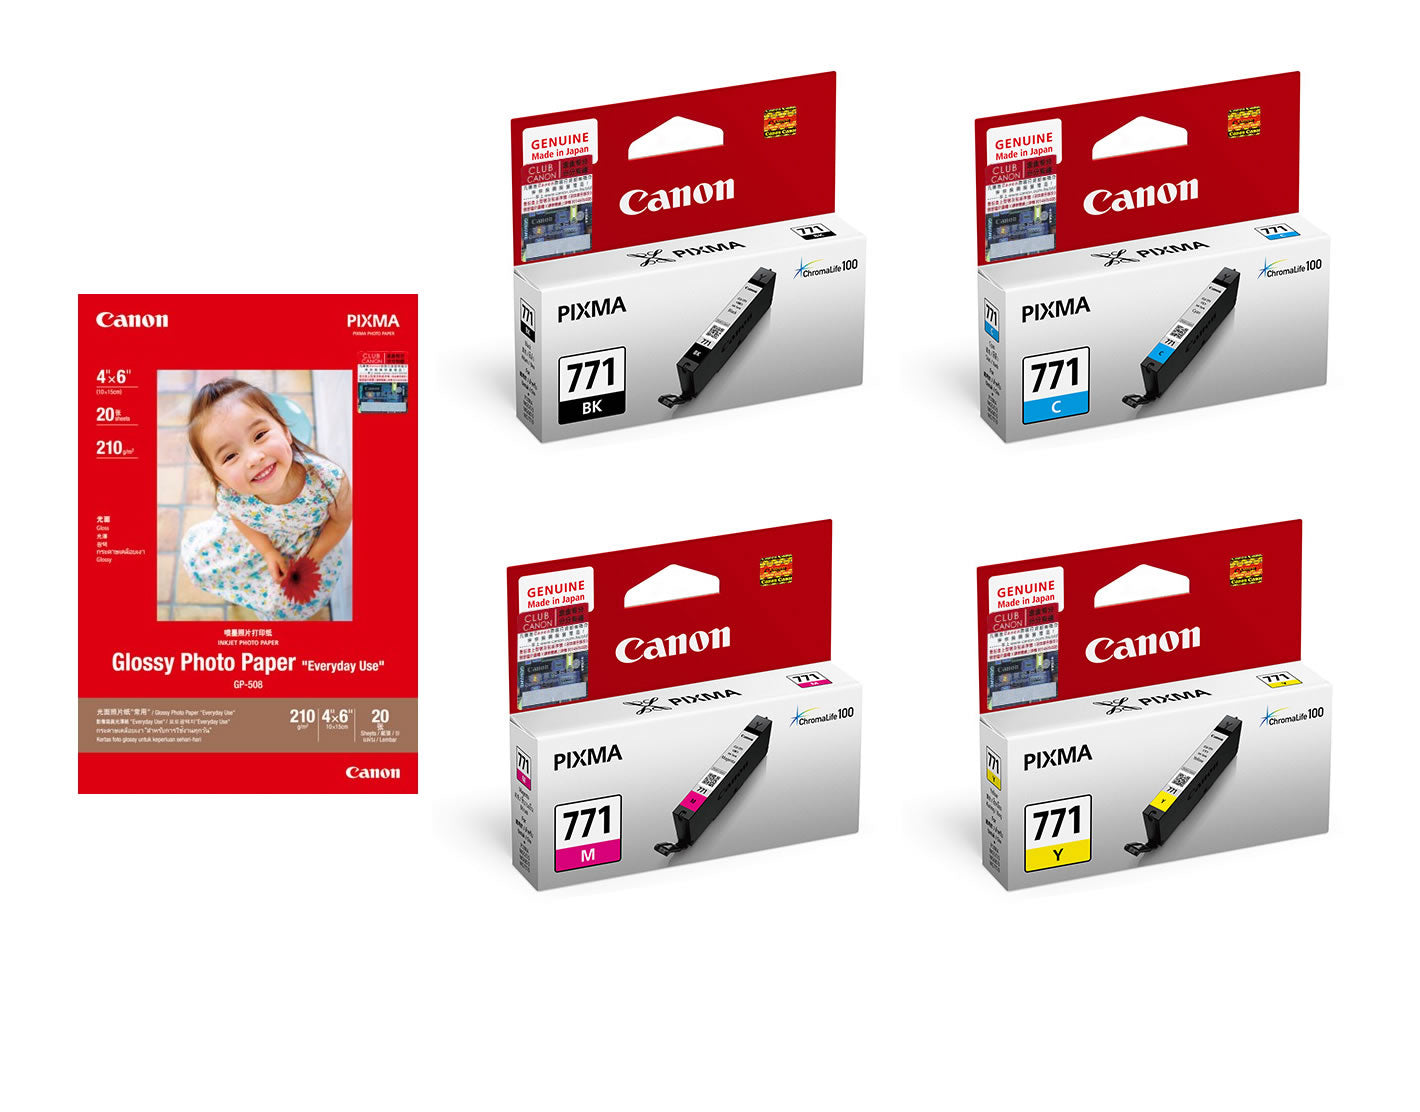 Canon CLI-771 BK/C/M/Y Ink Tanks (4pcs) + GP-508 4R Photo Paper (20 Sheets) [CLI-771 Value Pack]